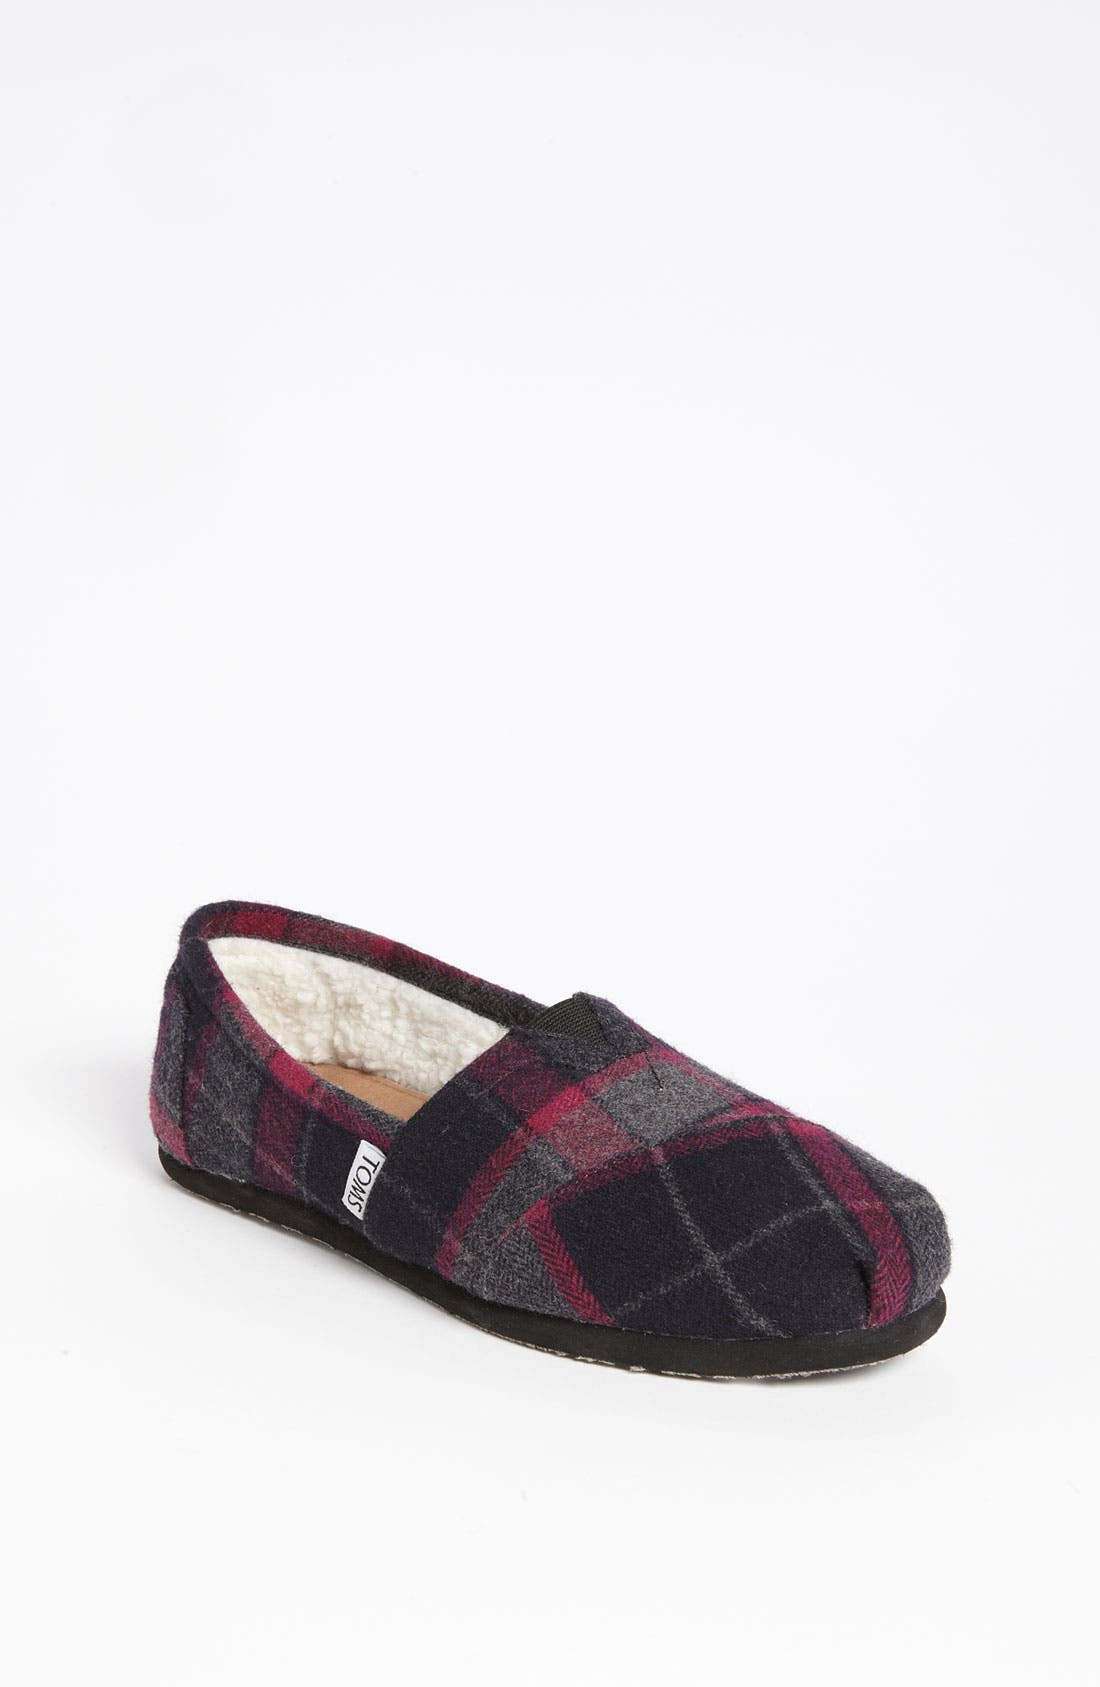 Main Image - TOMS 'Classic - Plaid' Wool Slip-On